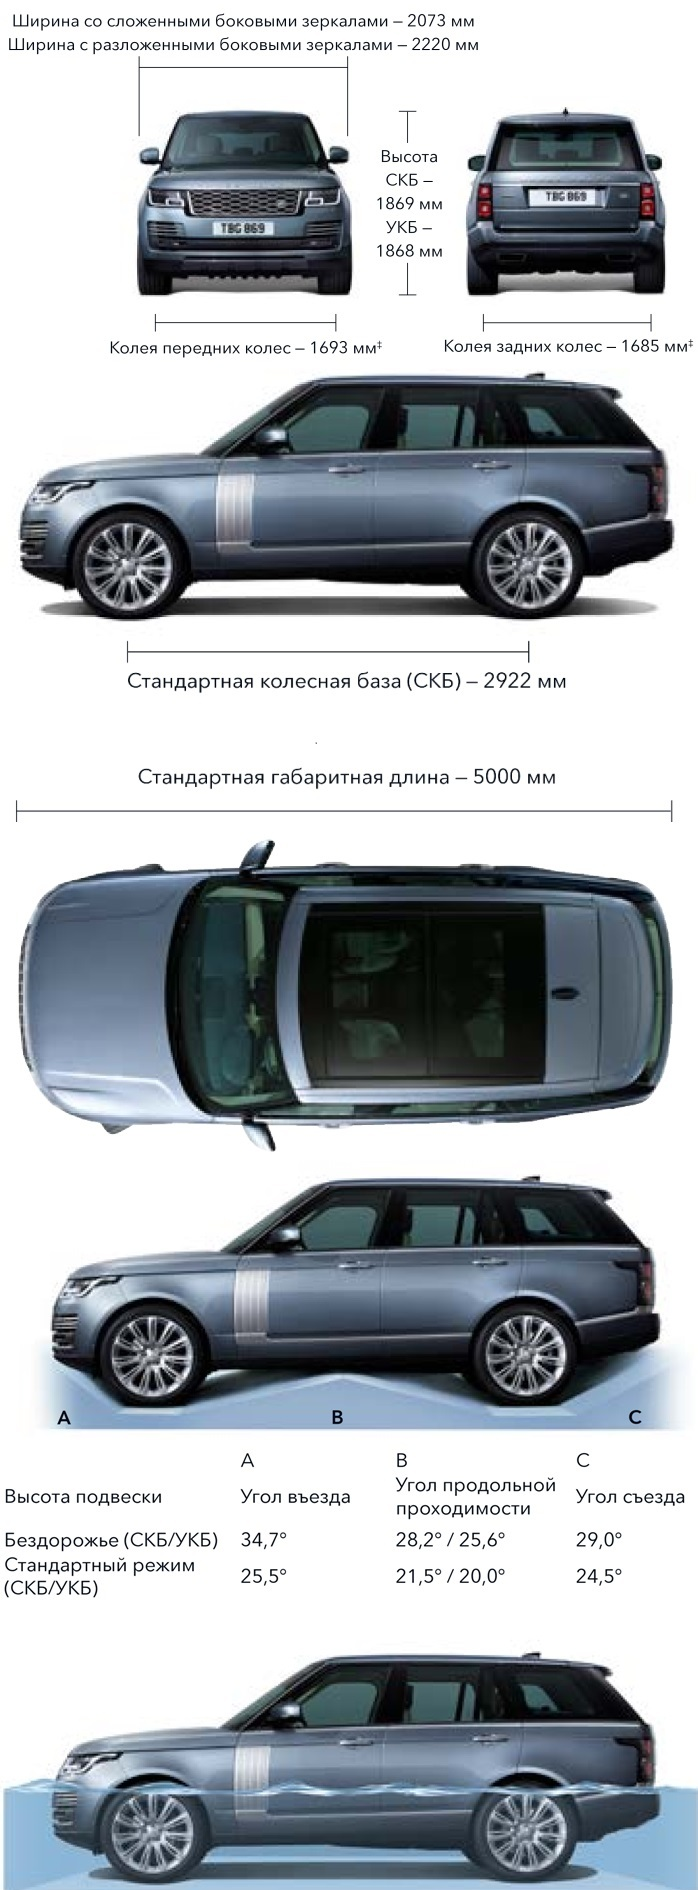 Land Rover Range Rover Autobiography 2017 габарит